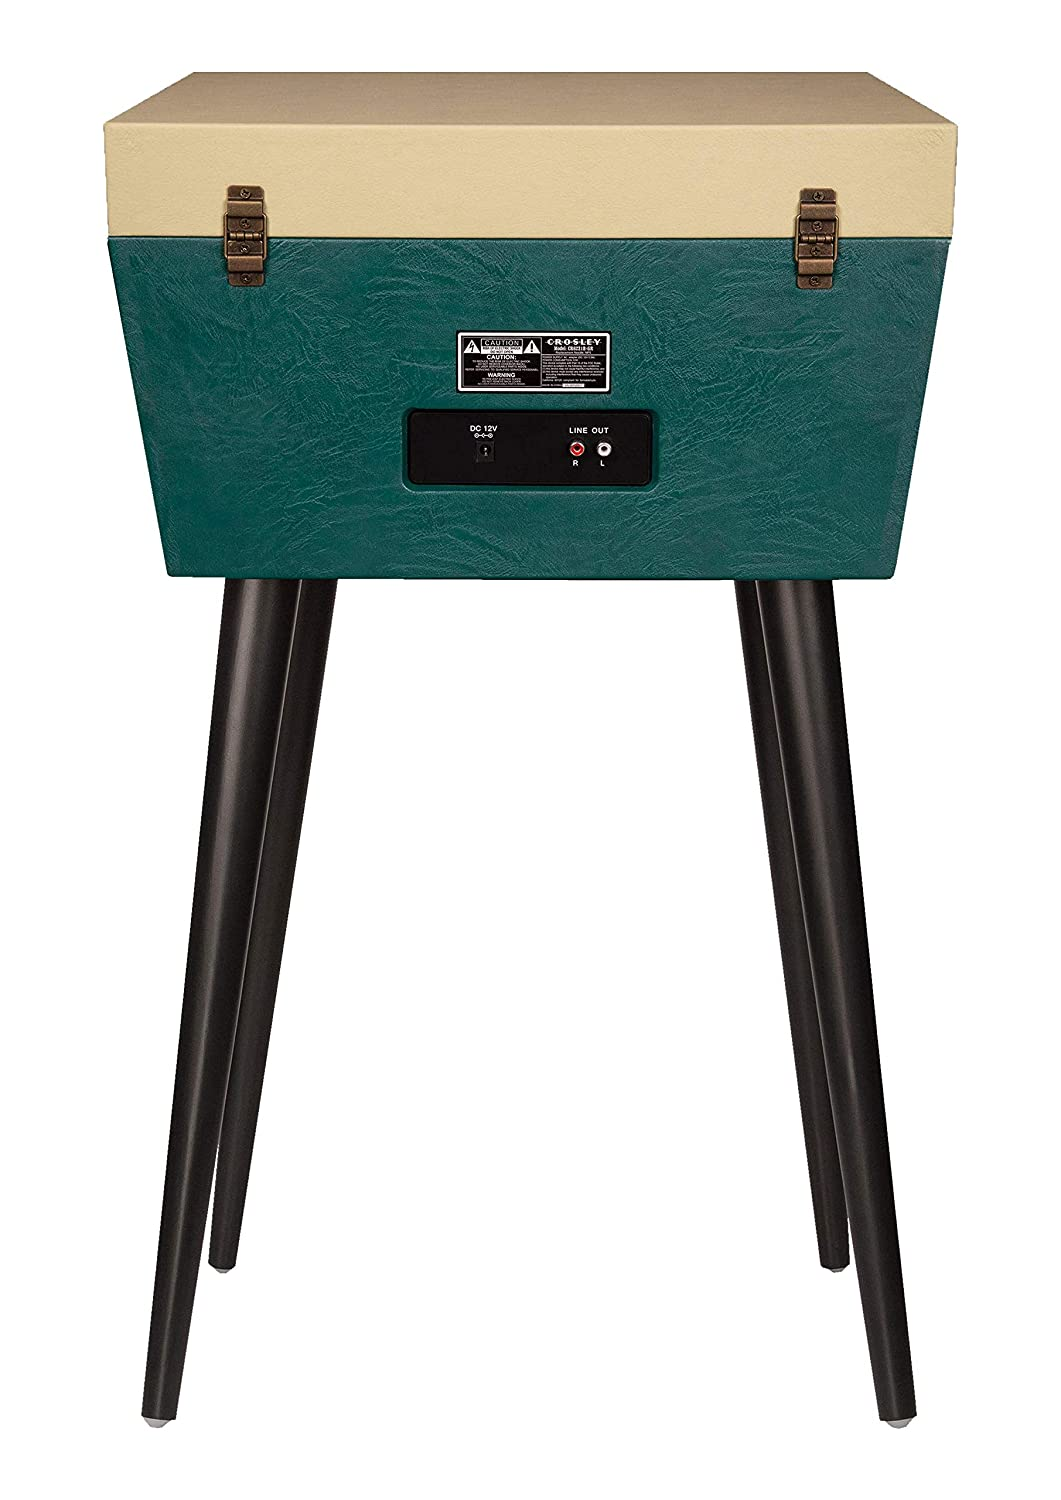 Crosley Sterling Turntable with Aux-In Bluetooth and removable legs Green /& Cream